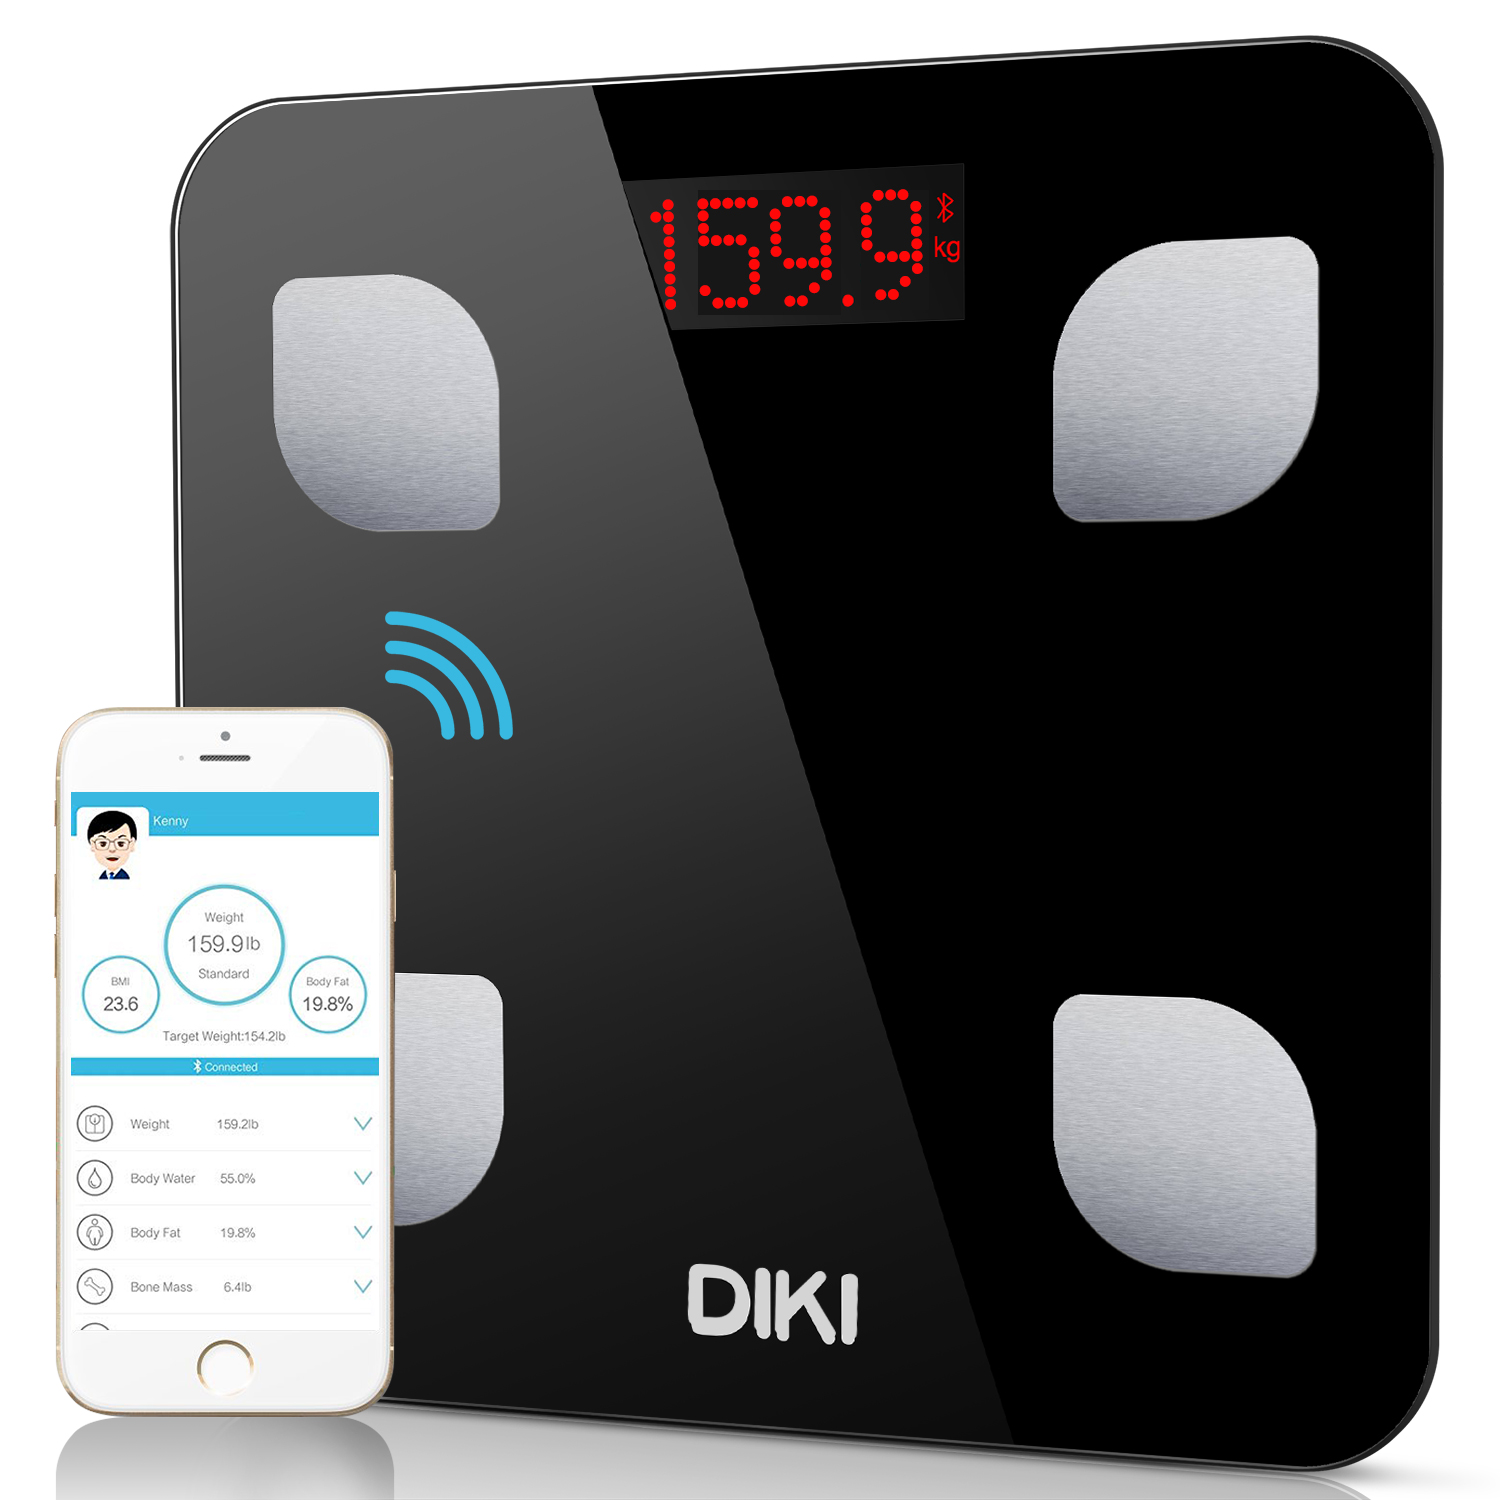 Body Fat Scales,DiKi Bluetooth Body Weight Scale with IOS and Android Devices,High Precision Digital Bathroom Scales,Digital Body Weight with Unlimited Users App/8 Body Components Data/Step On (Black)